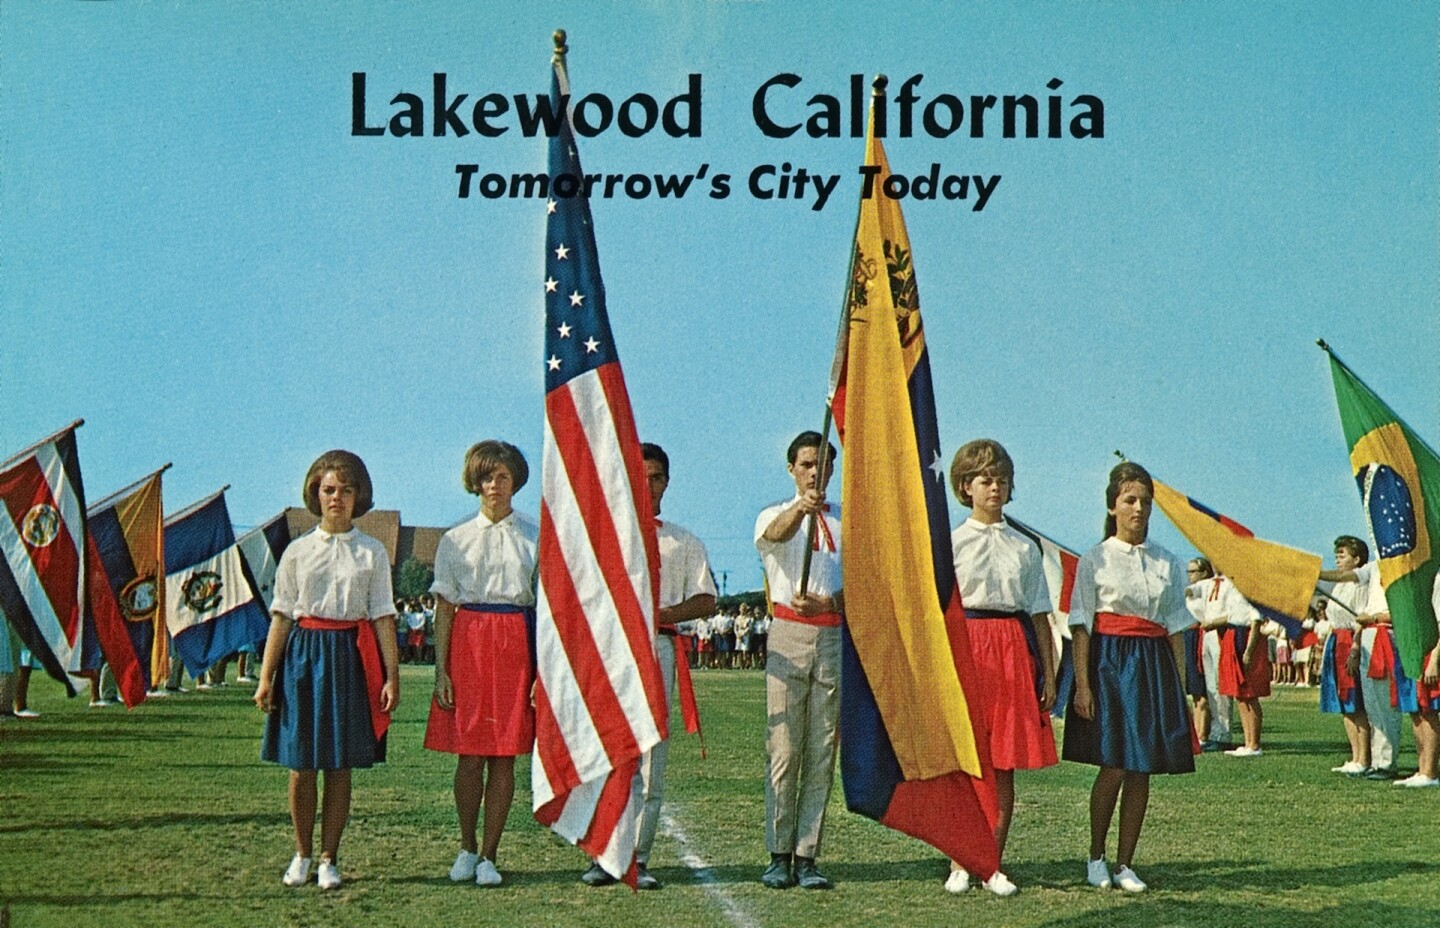 Lakewood (c.1960s) – Tomorrow's City Today